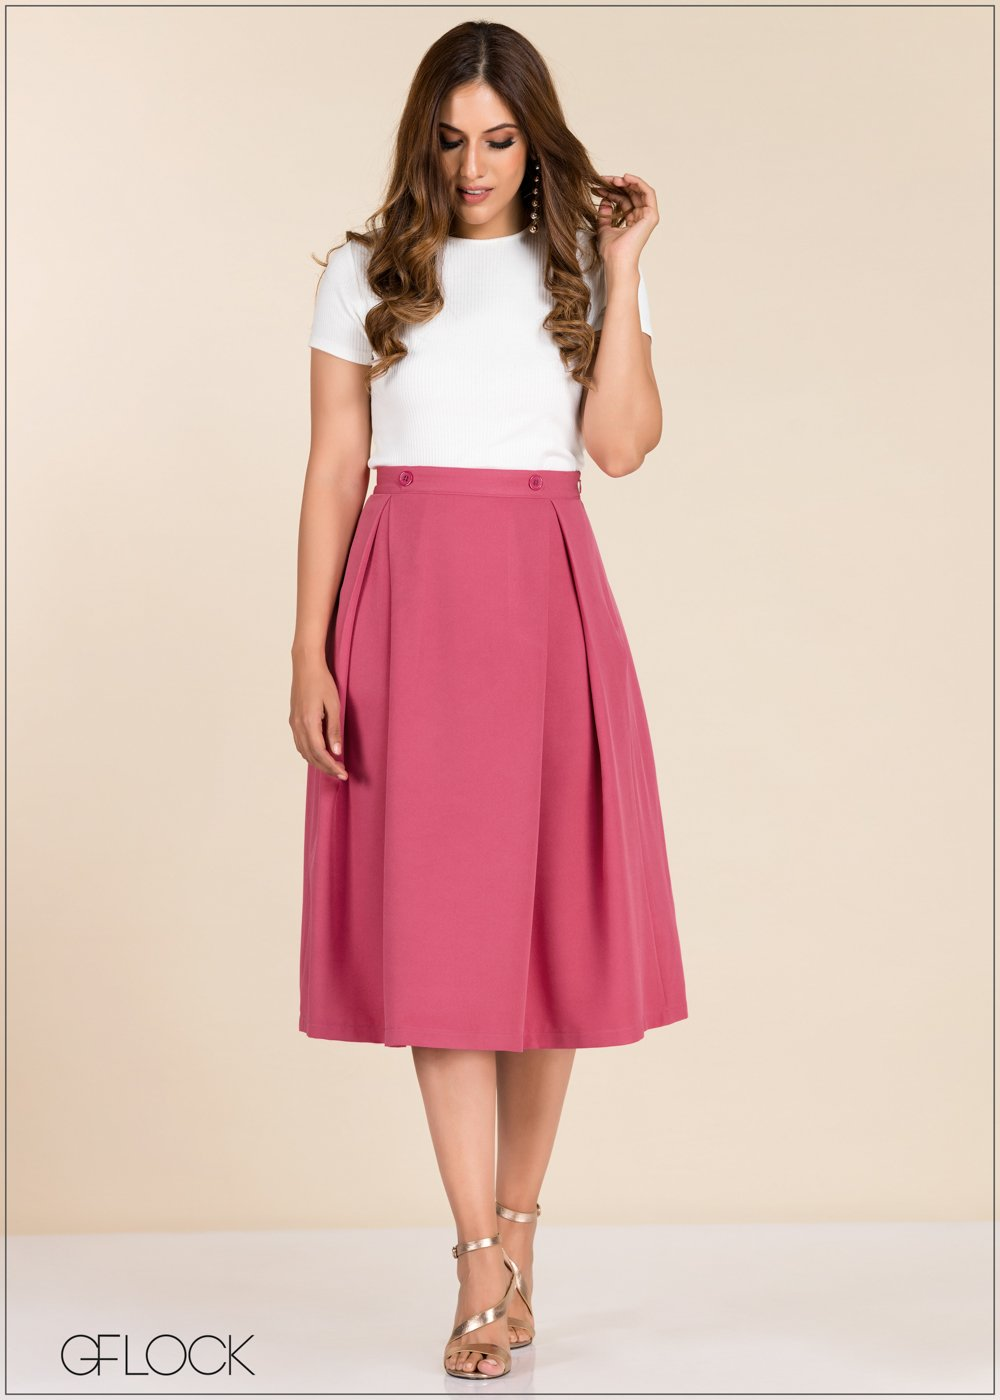 GFLOCK - [product_sku] - Women_Skirts - Button Detailed Skirt